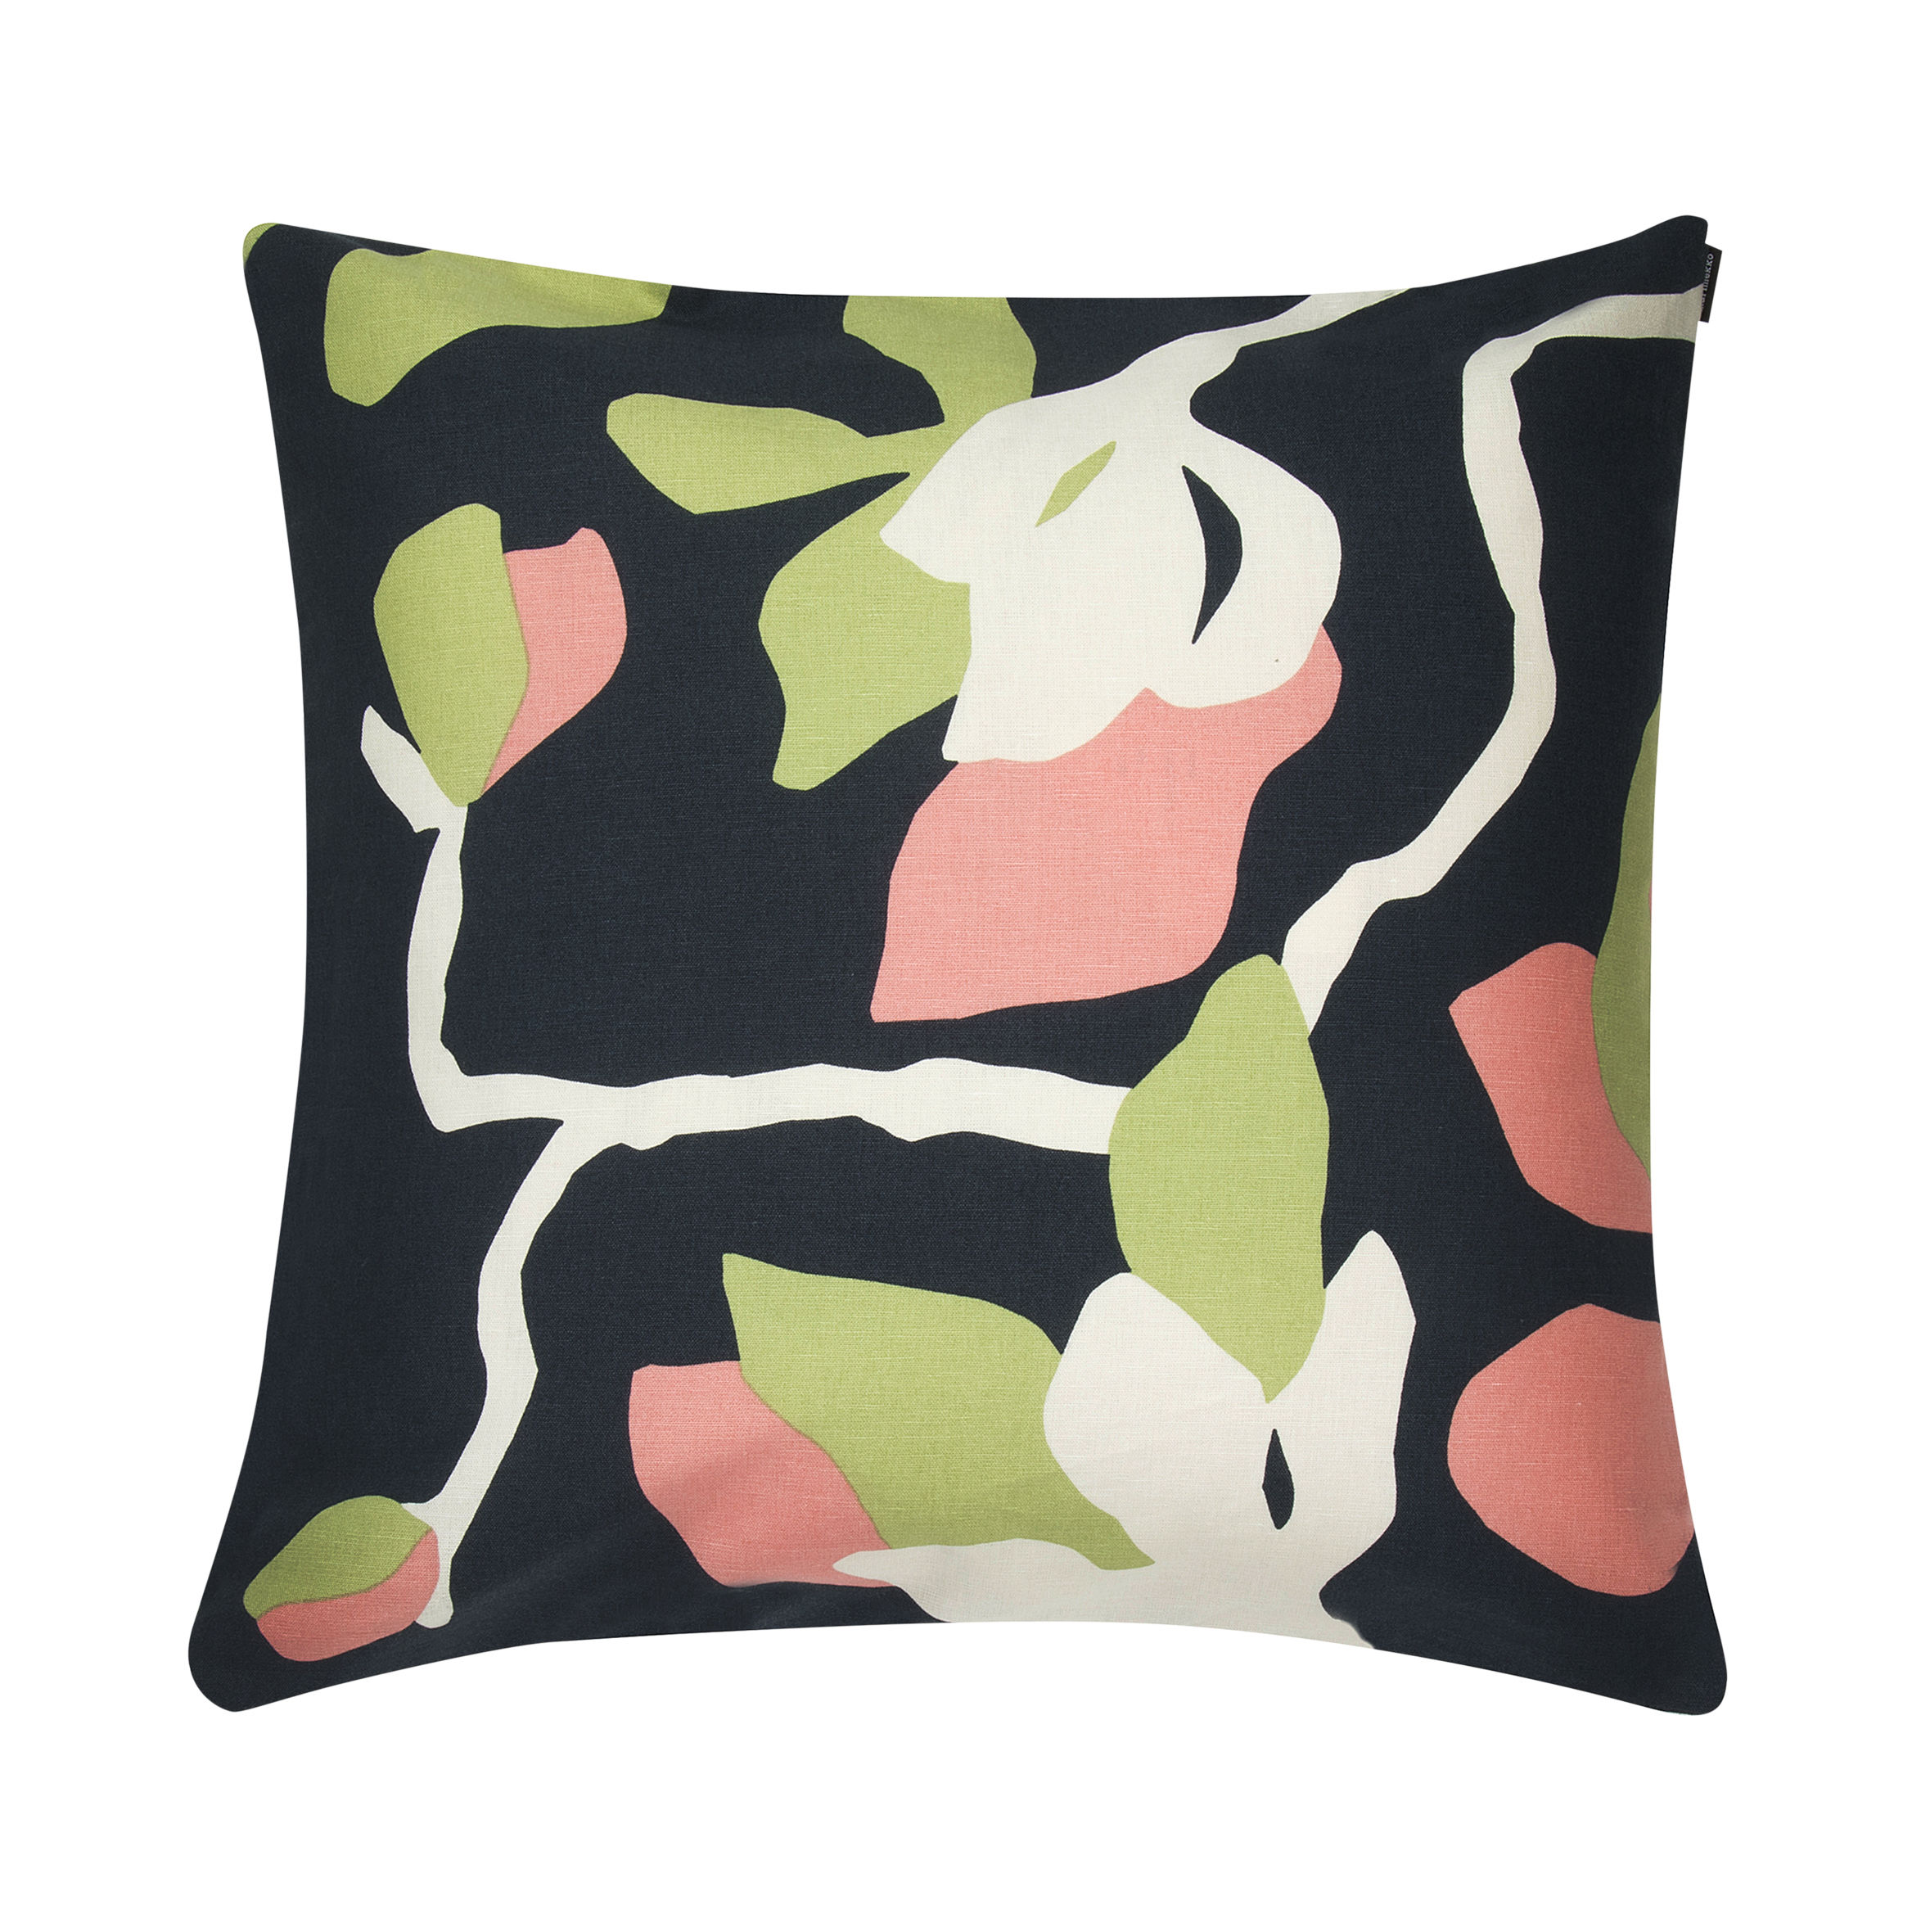 Decoration - Bedding & Bath Towels - Mielitty Cushion cover - / 50 x 50 cm by Marimekko - Mielitty / Dark blue & pink - Cotton, Linen